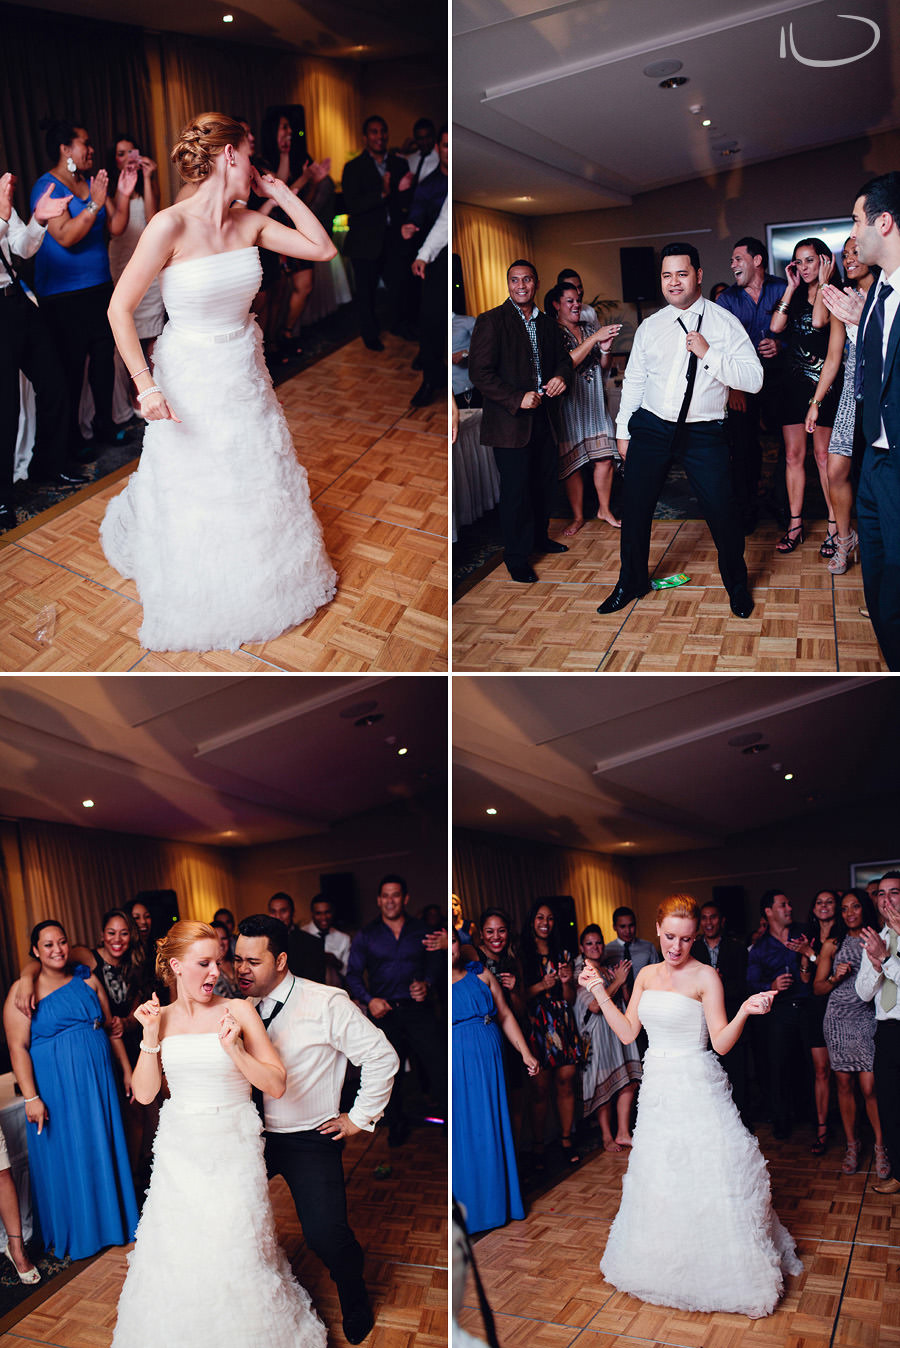 Northern Beaches Wedding Photography: Bride & Groom dancing